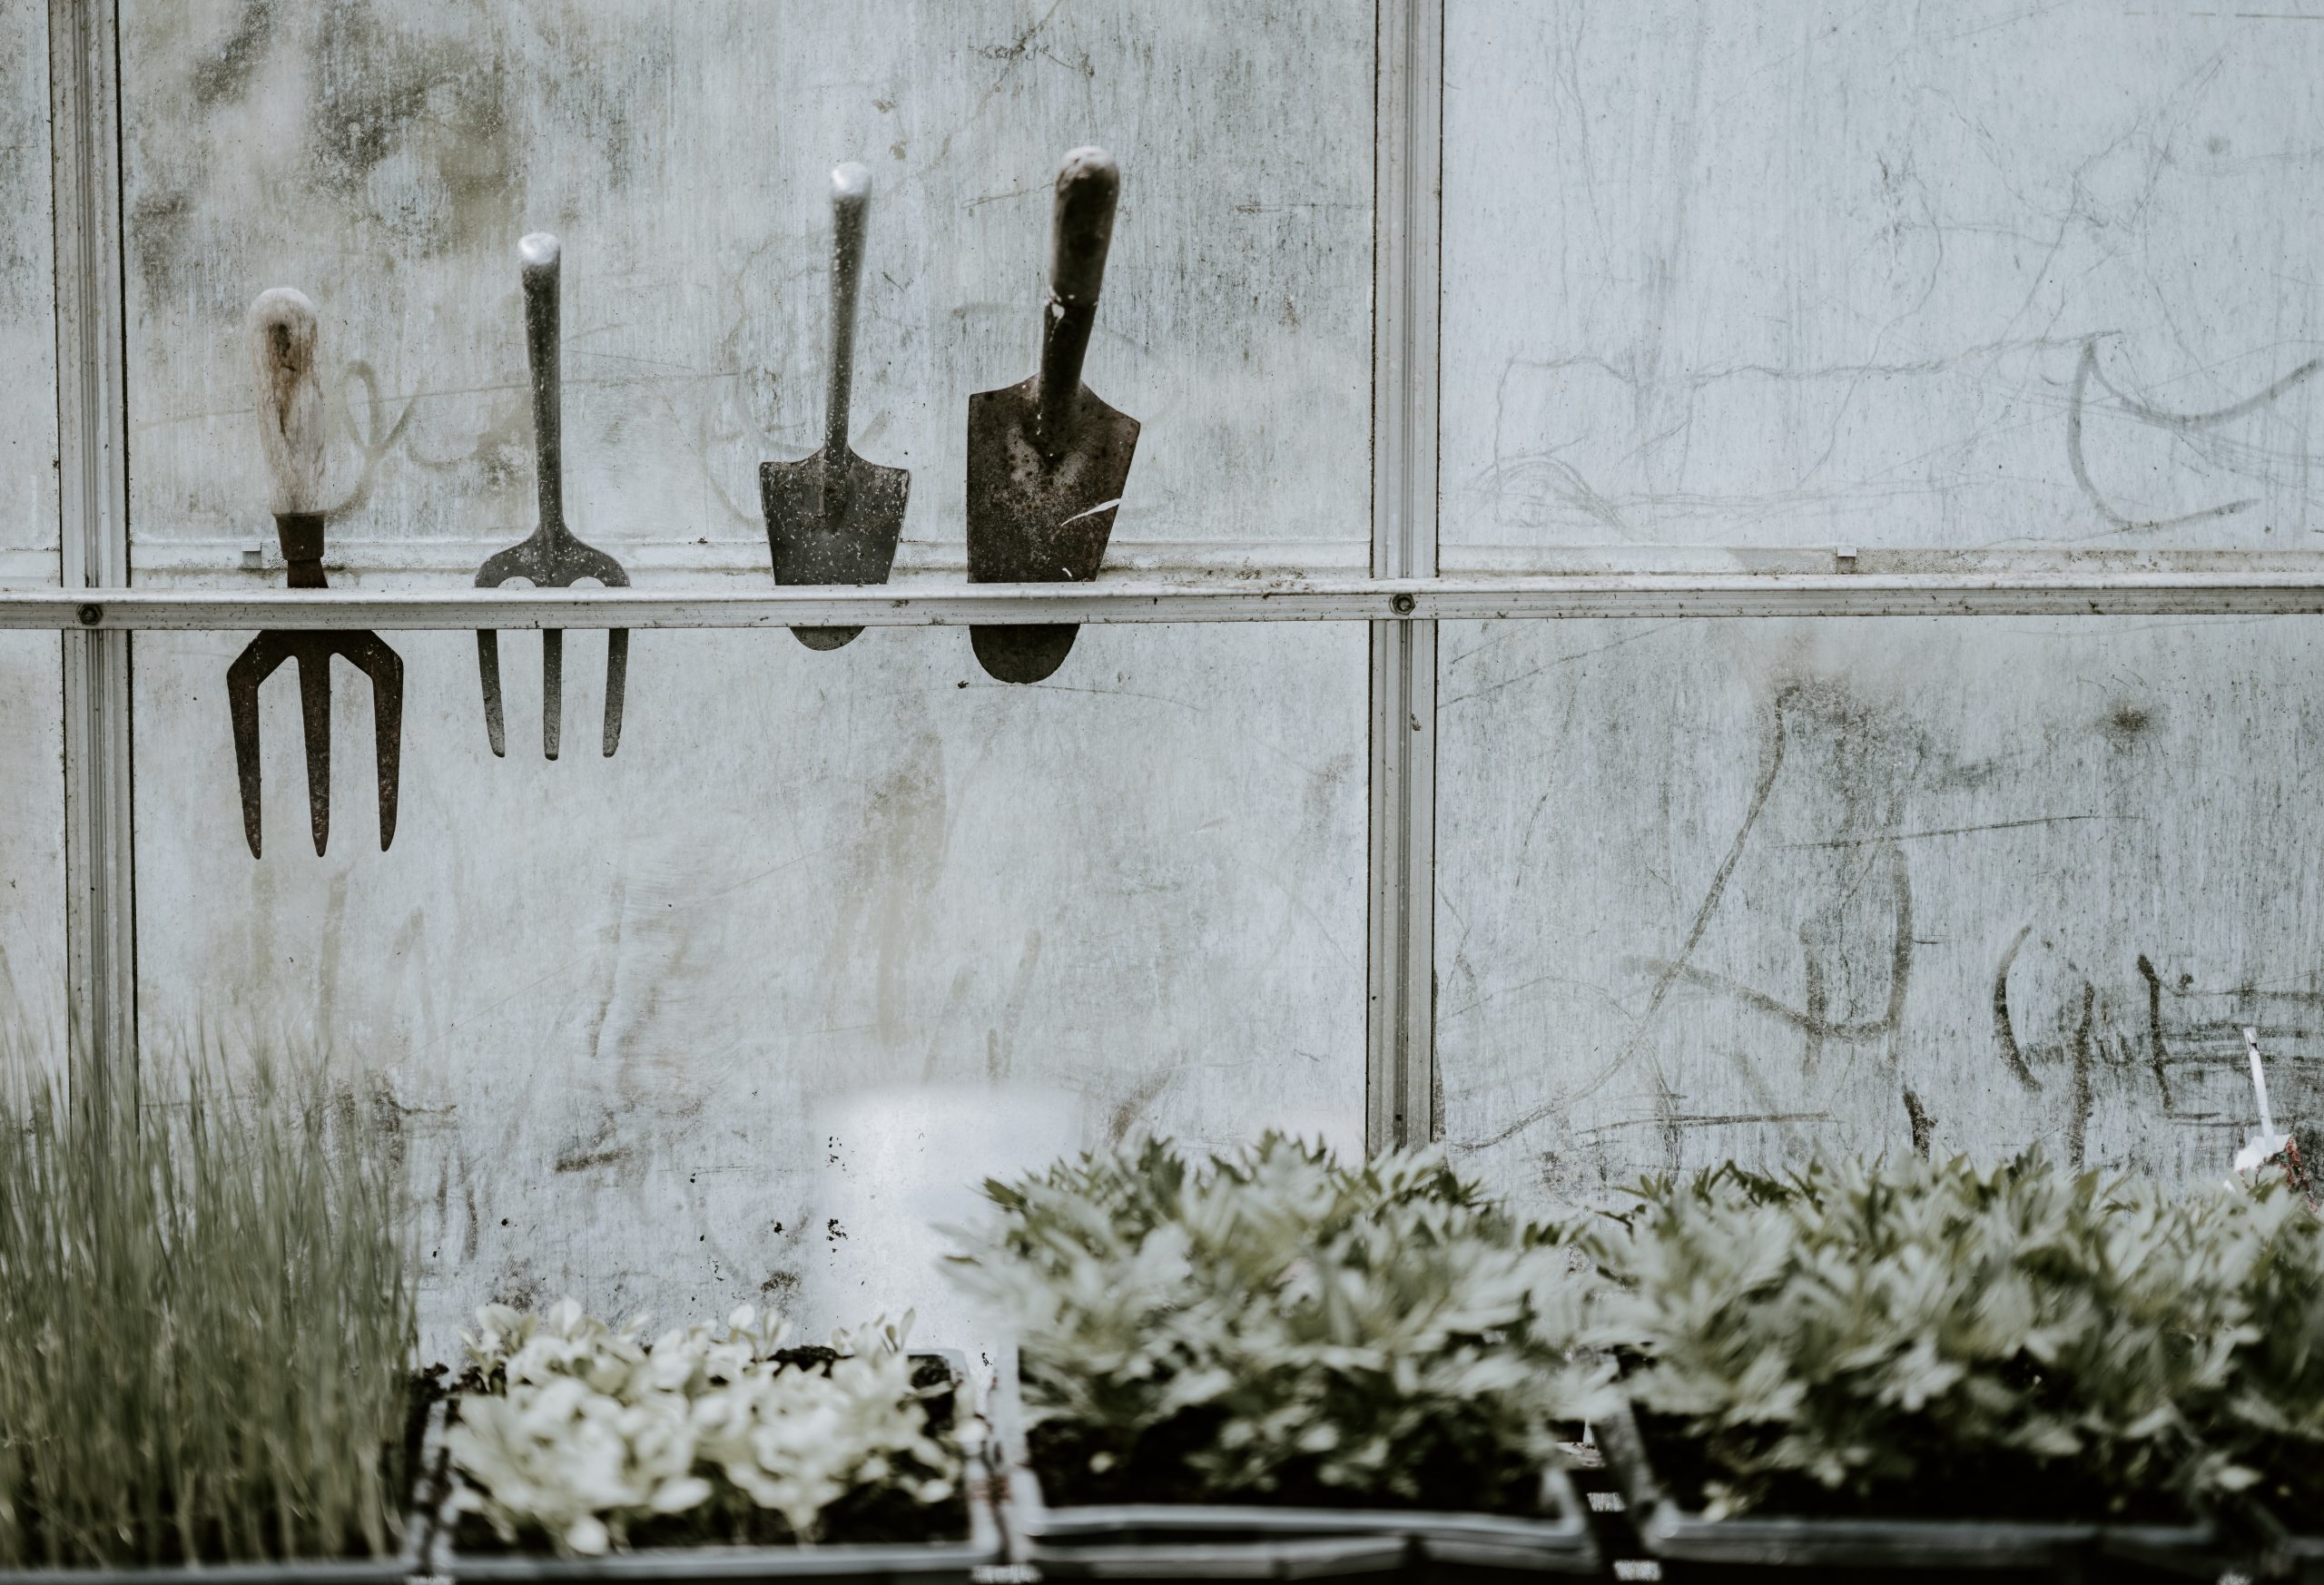 How to Disinfect a Gardening Tool